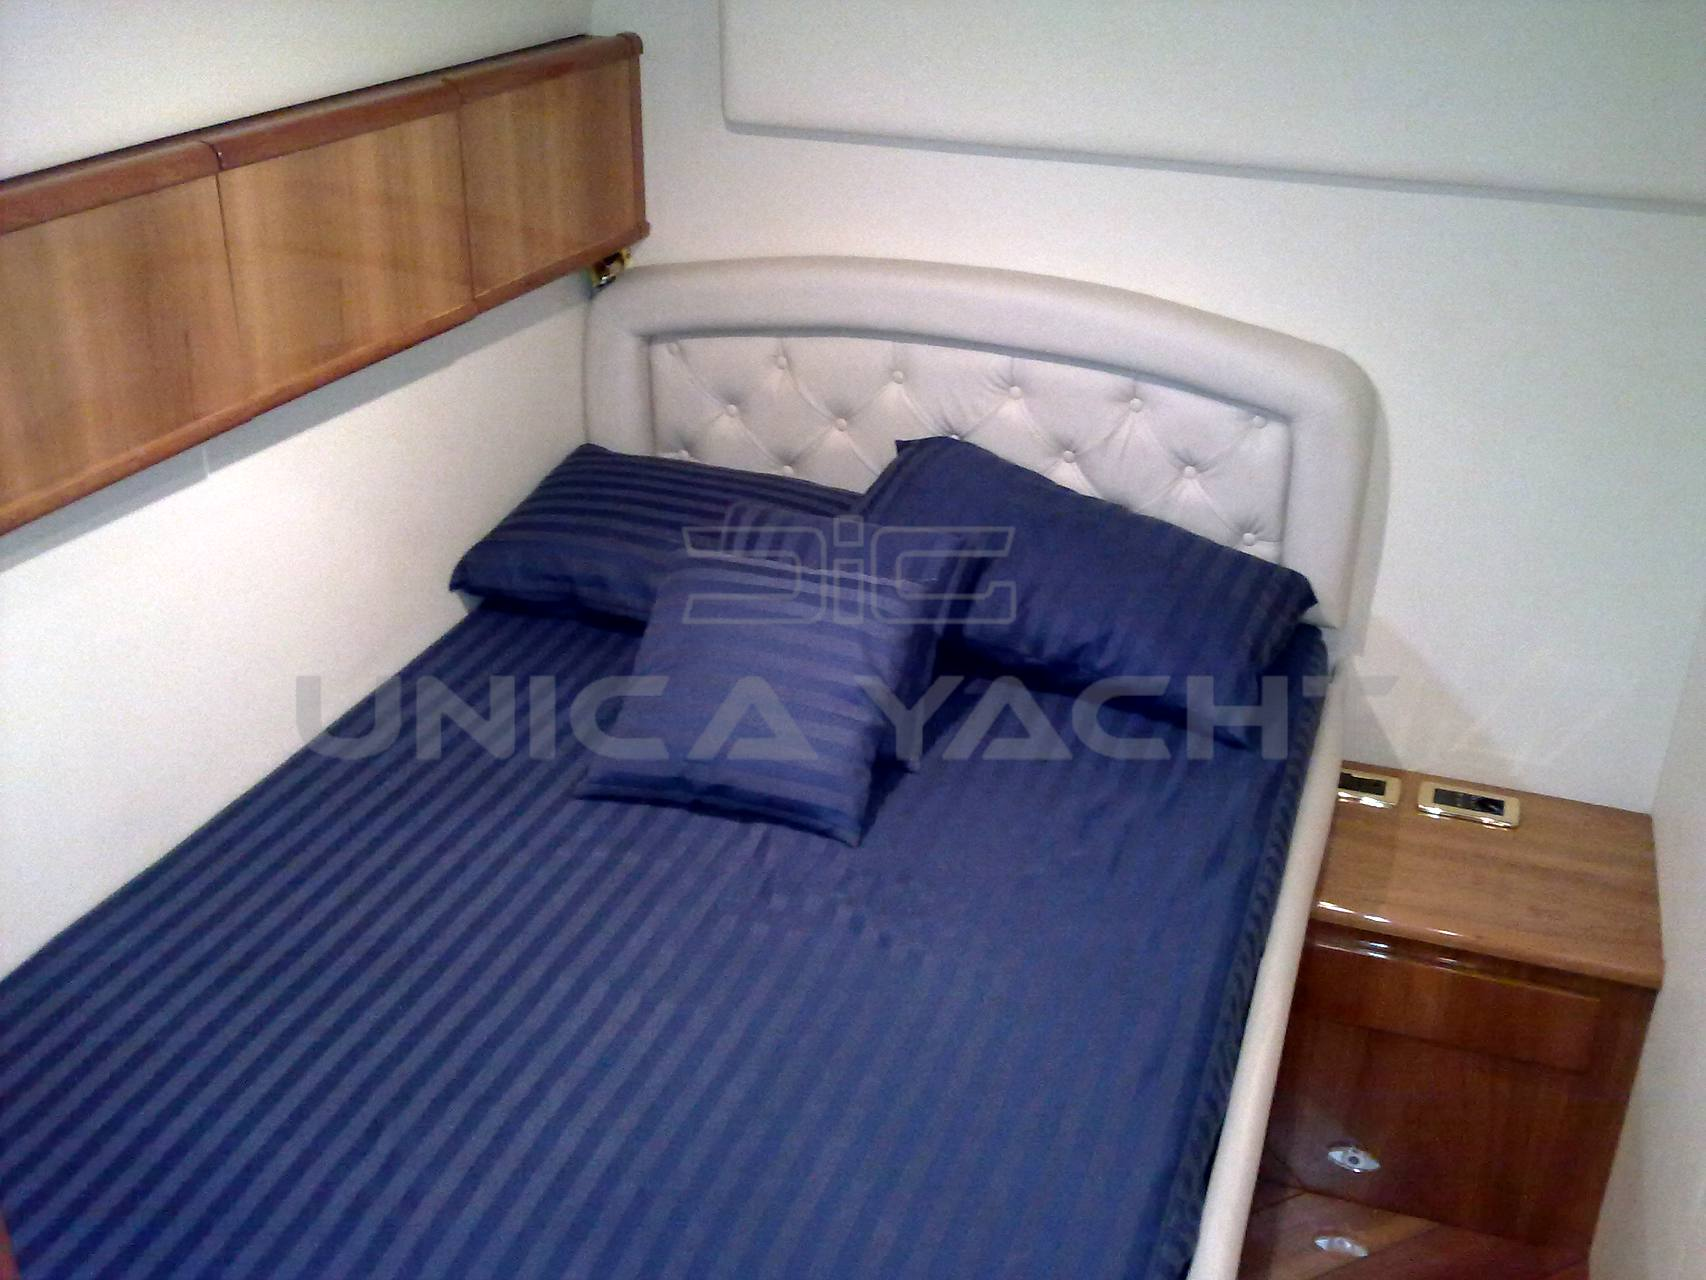 Conam 58 sport h.t. silver edition Motor boat used for sale